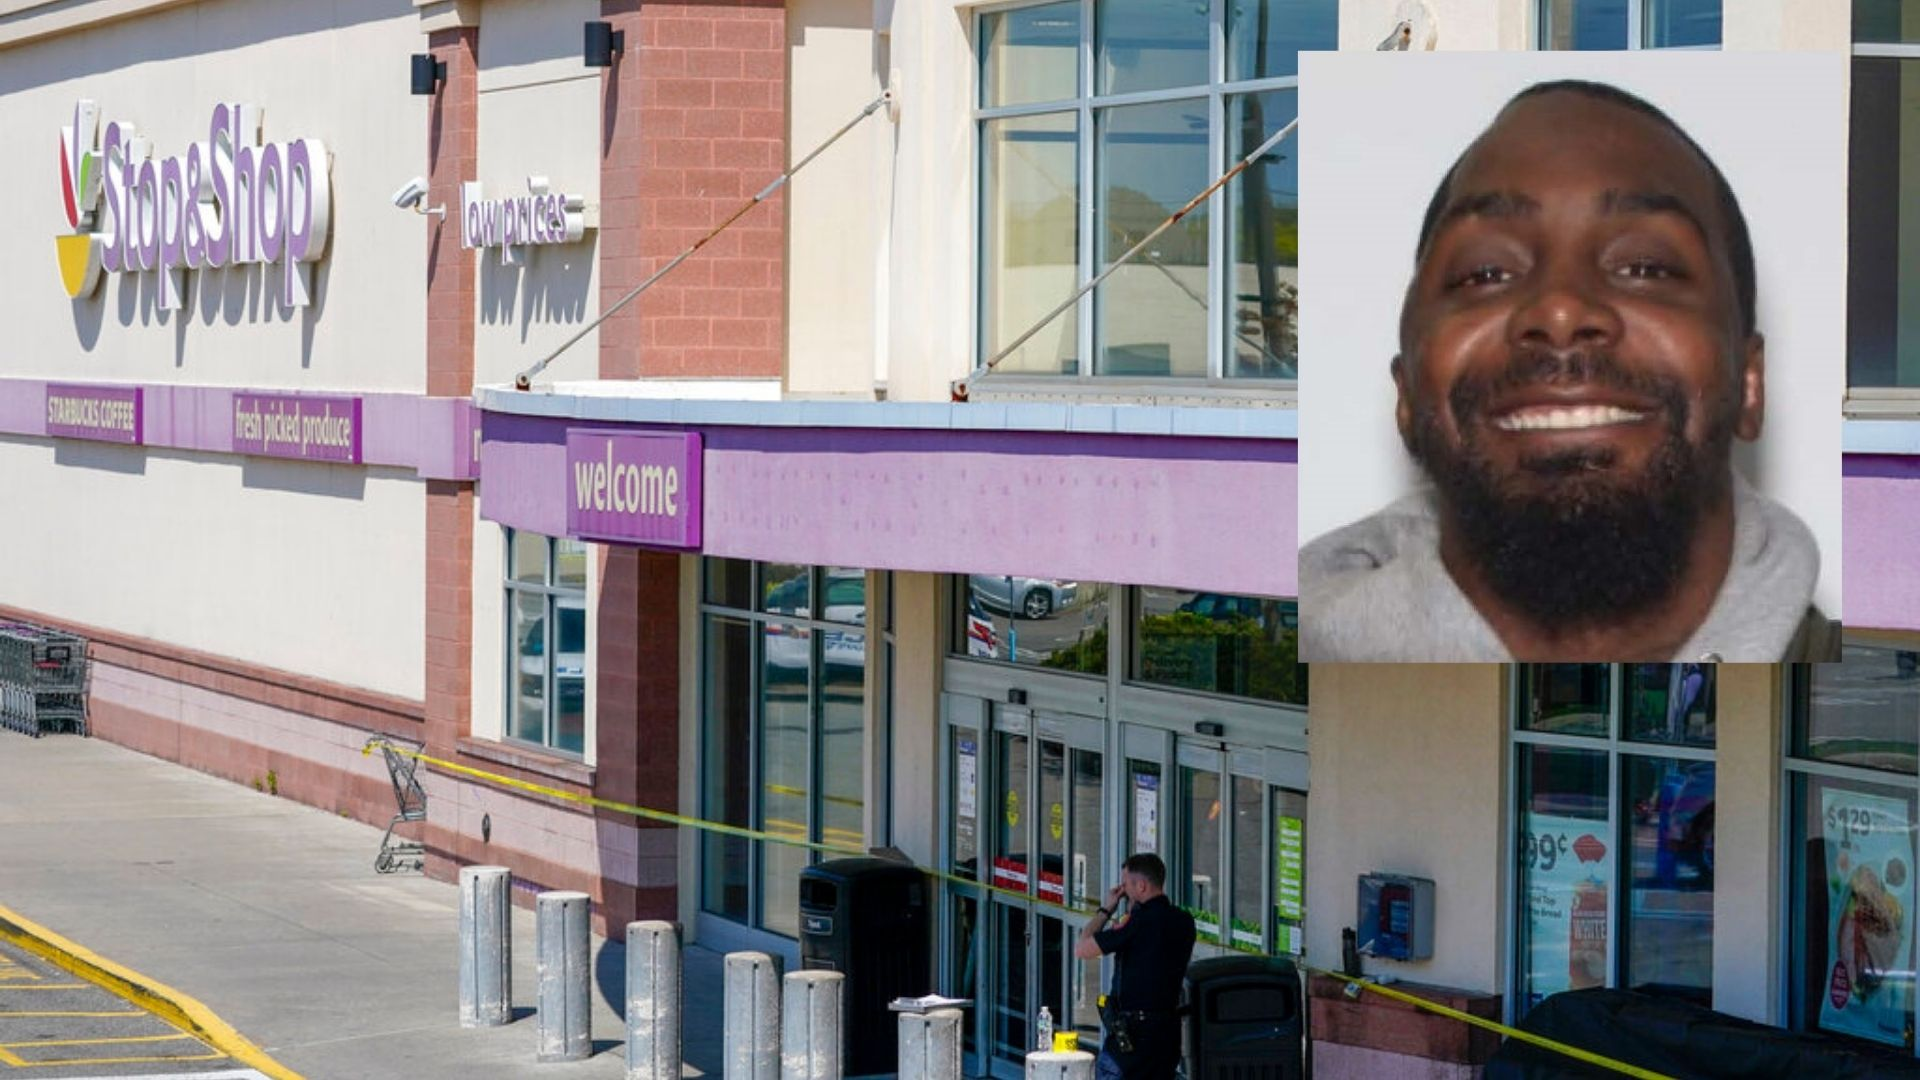 LI shooting suspect Gabriel DeWitt Wilson, right, and the stop & shop where he allegedly shot three people, left